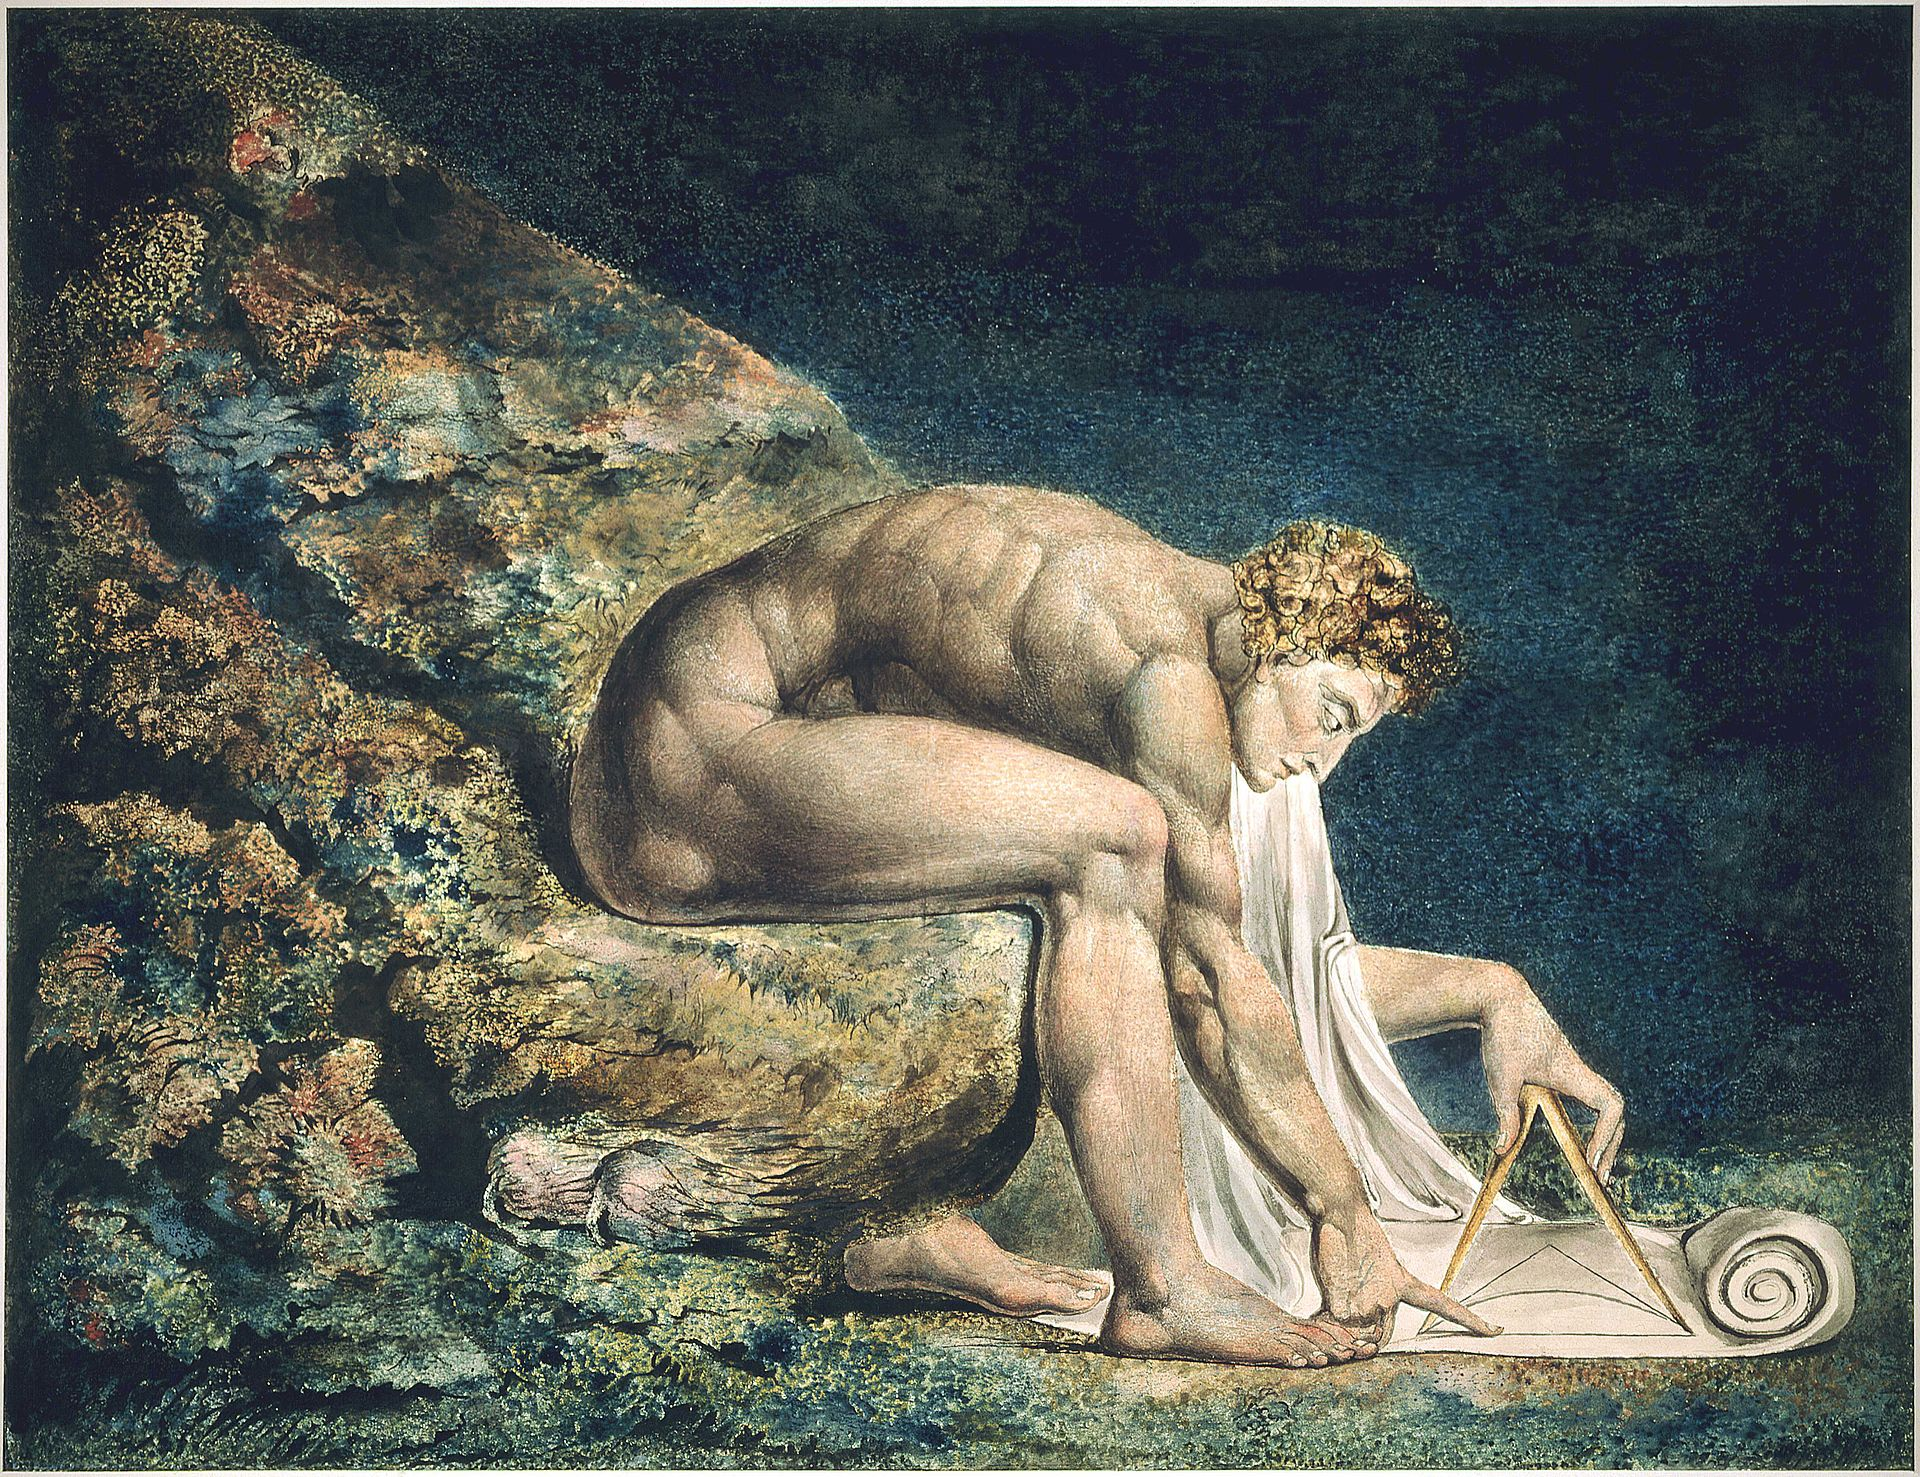 monotype by the English poet, painter and printmaker William Blake